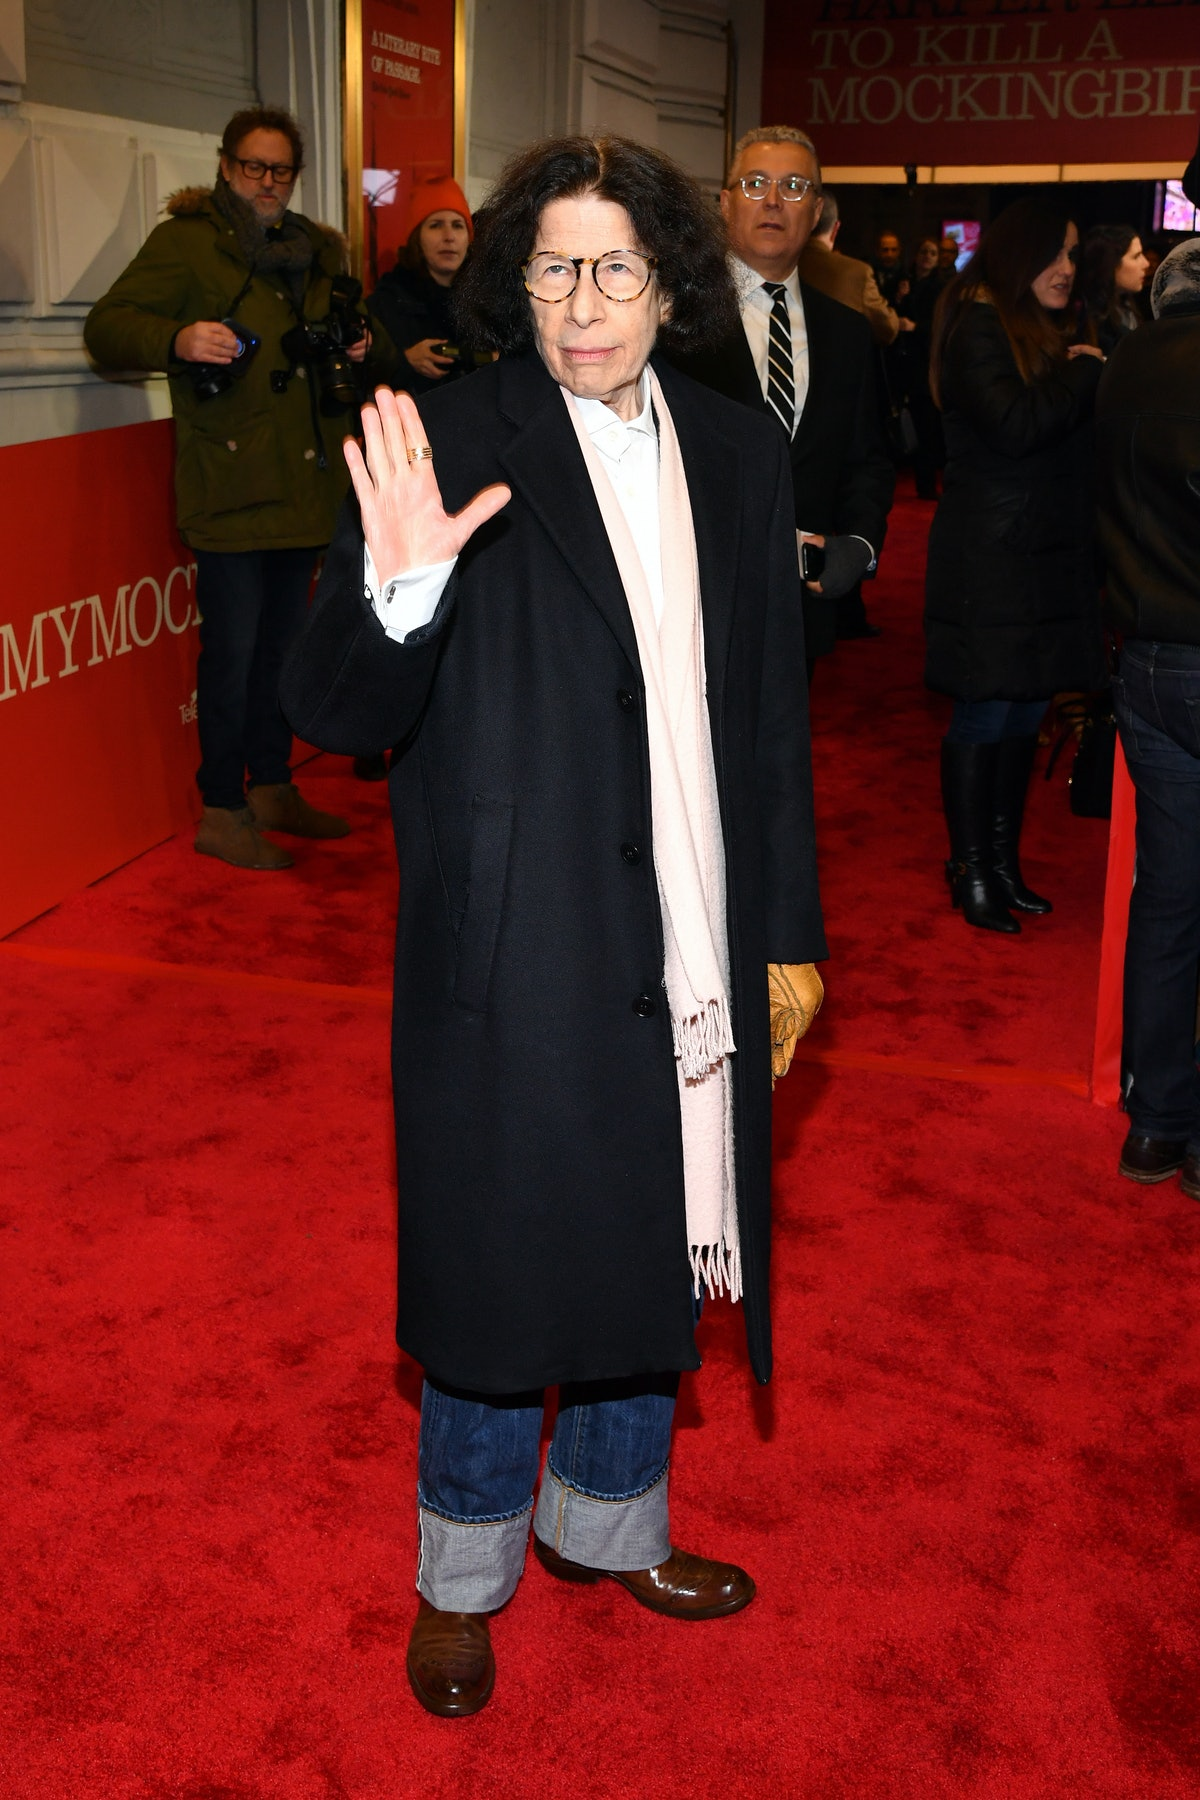 Fran Lebowitz holding up her hand